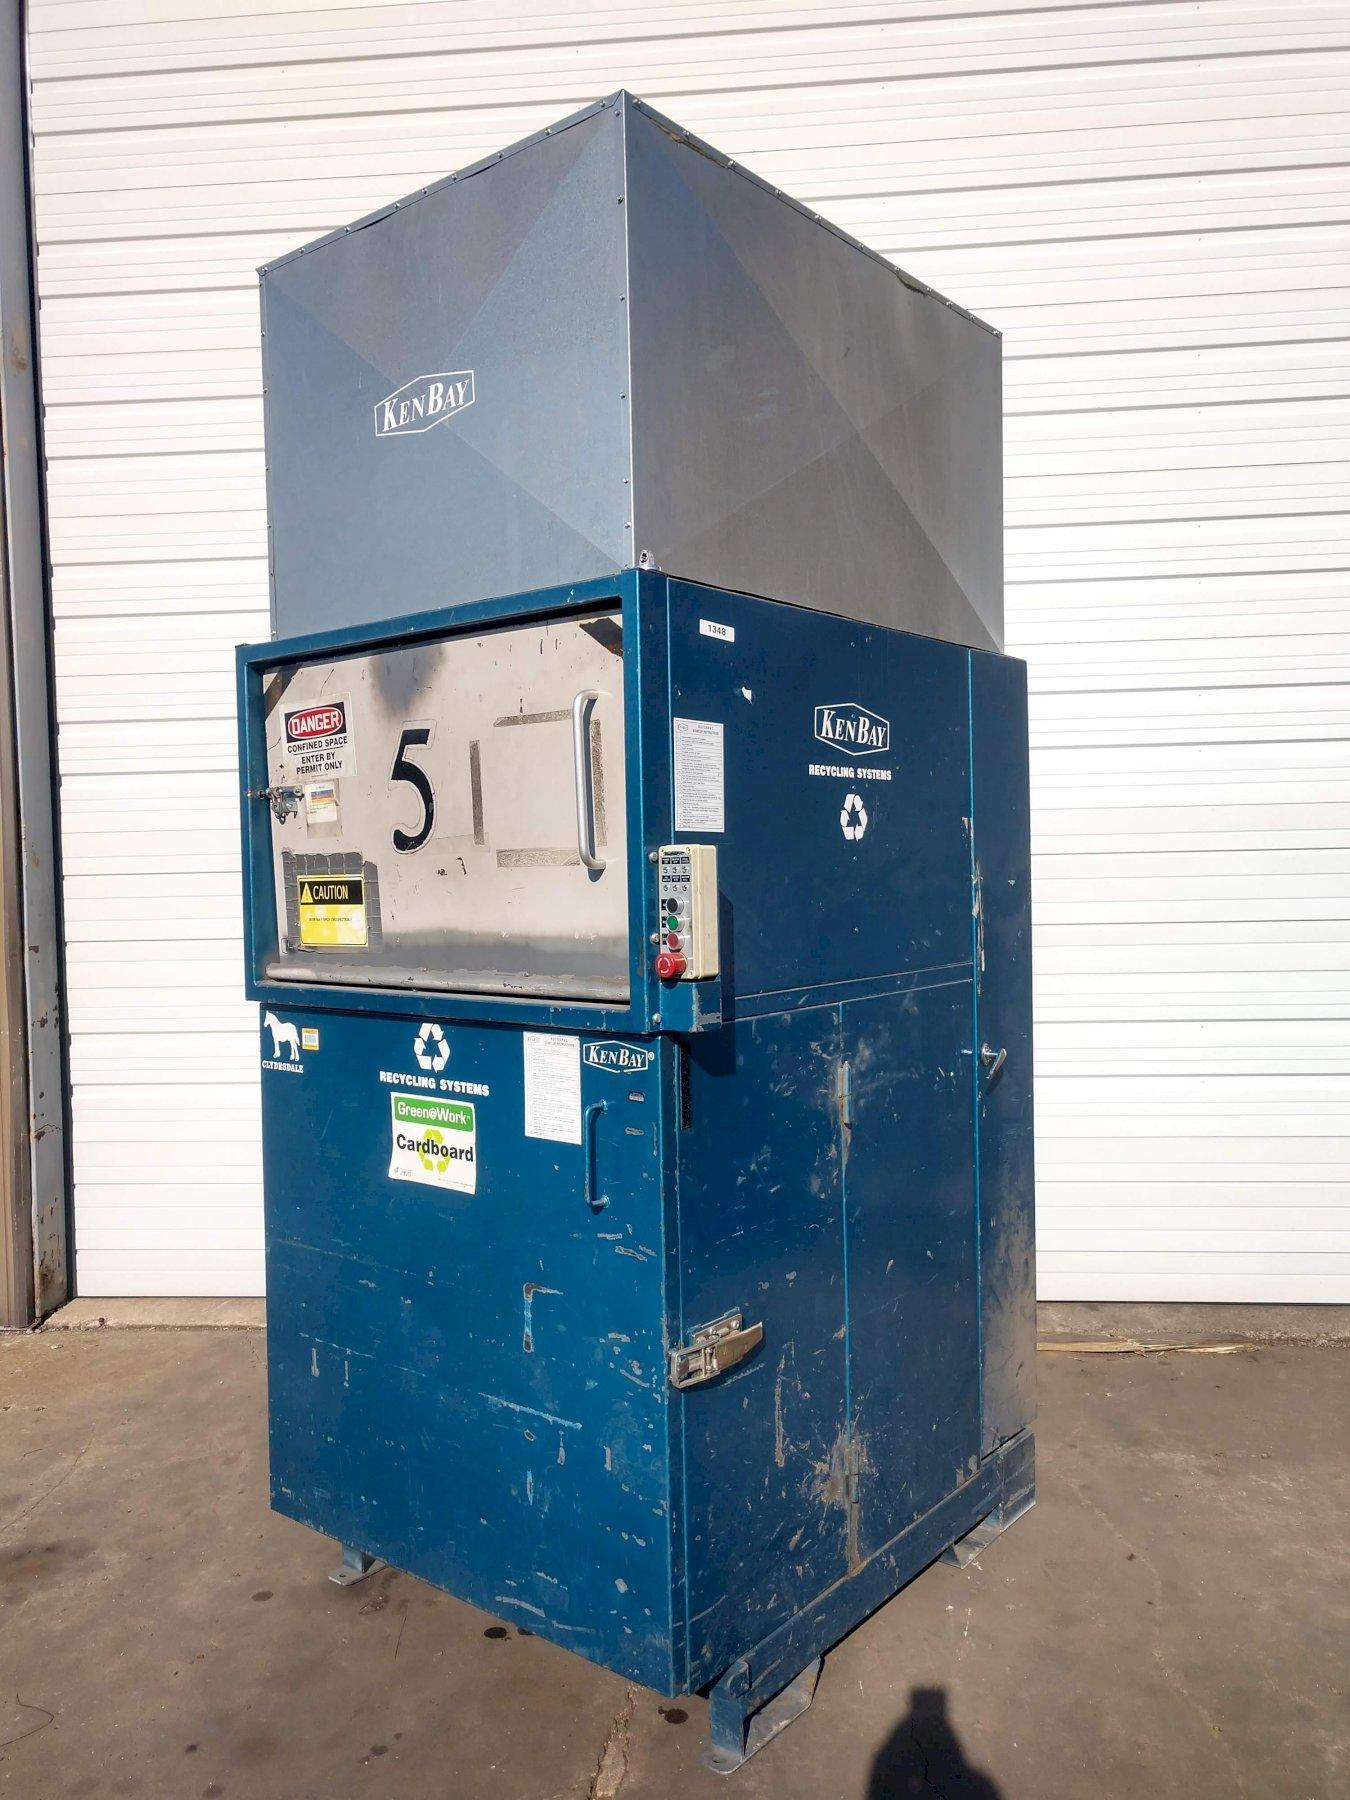 KENBAY CLYDESDALE ROTOPAC COMPACTOR: STOCK #13009